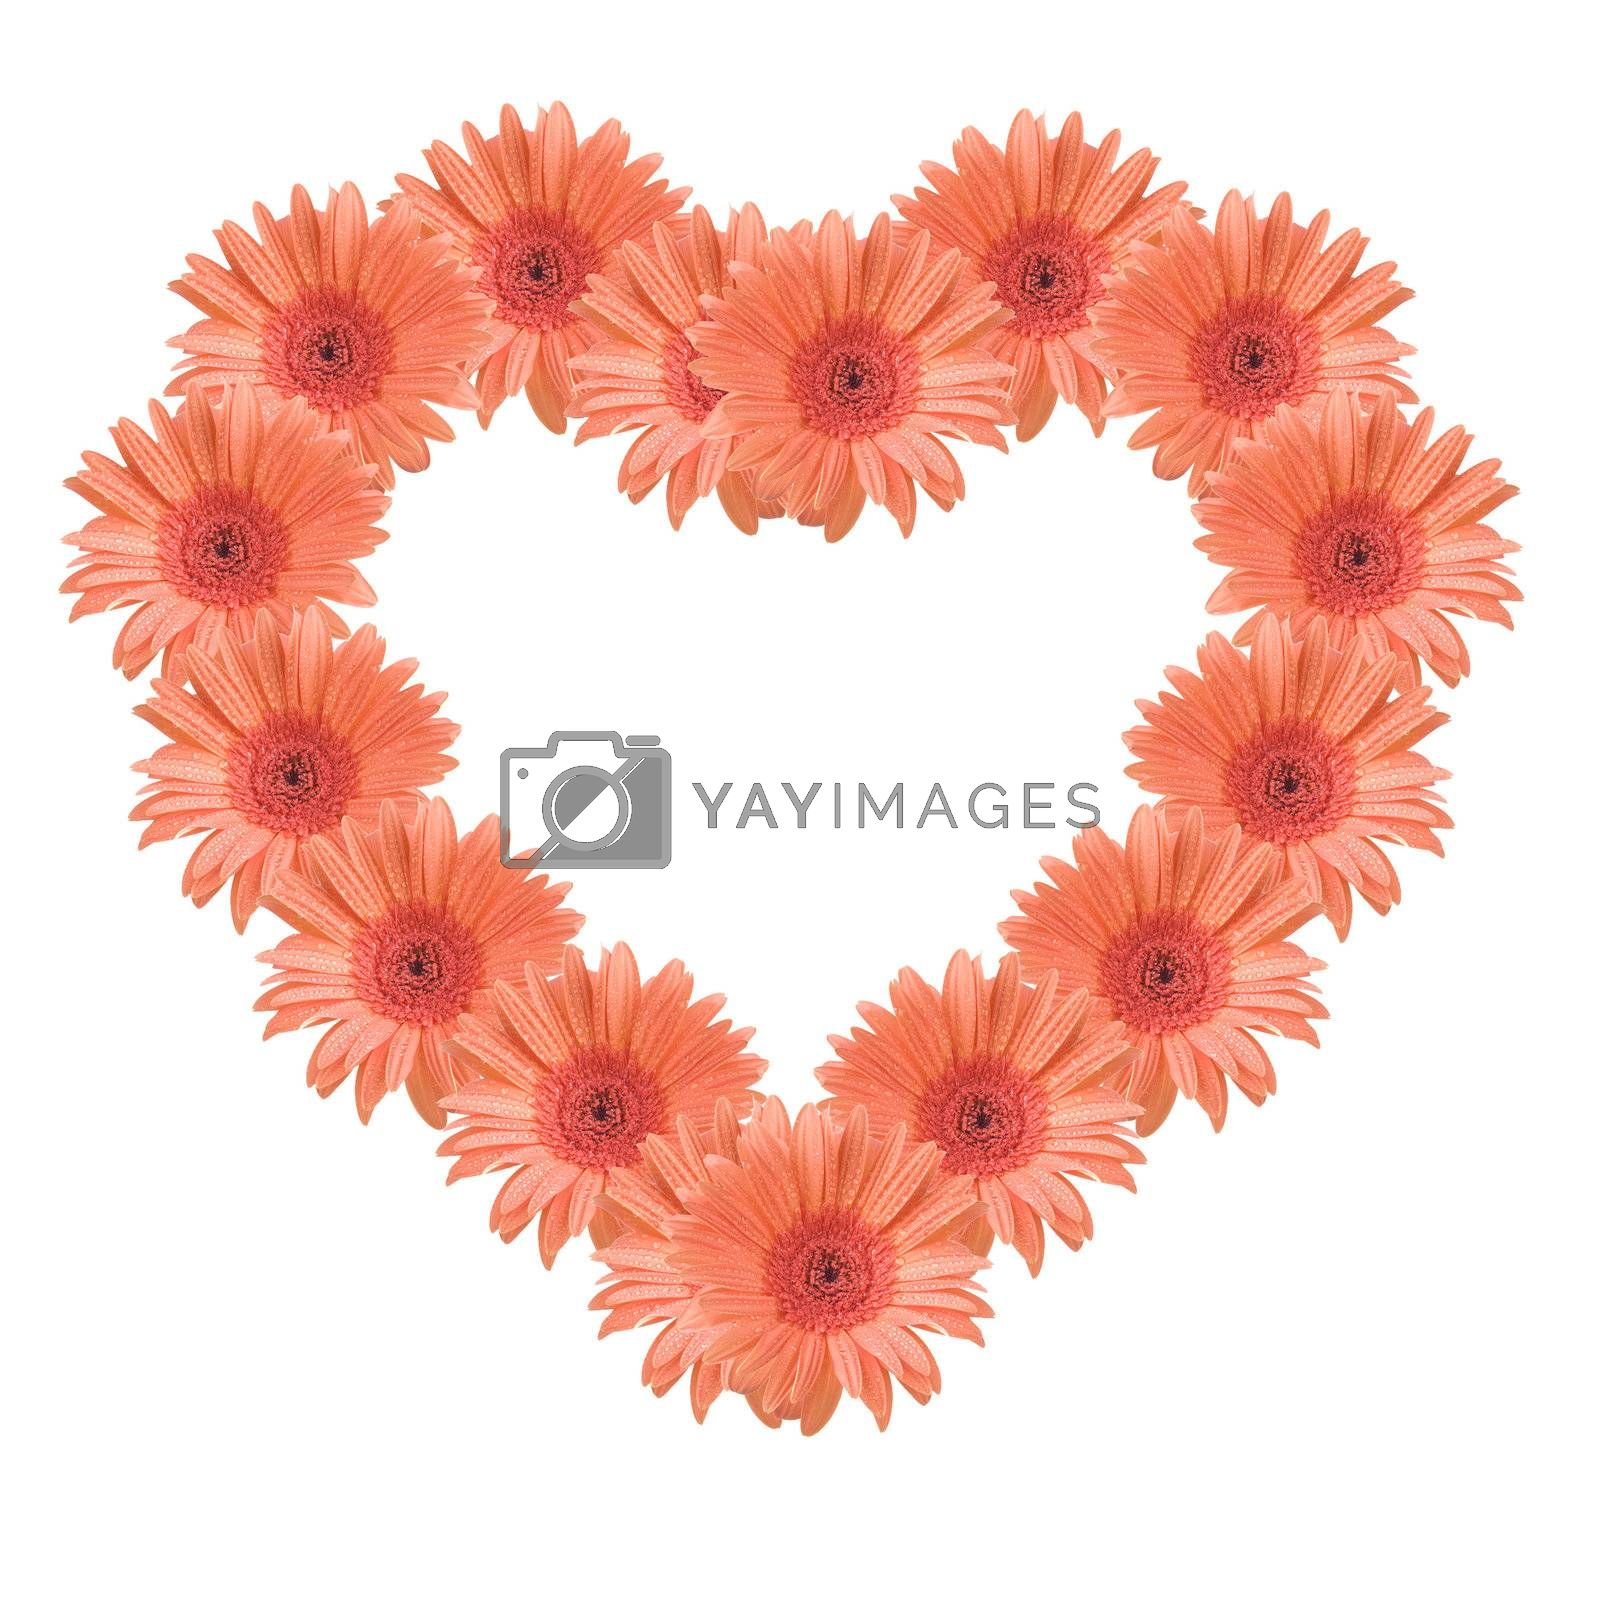 Gerber flowers forming a heart, isolated on white background.